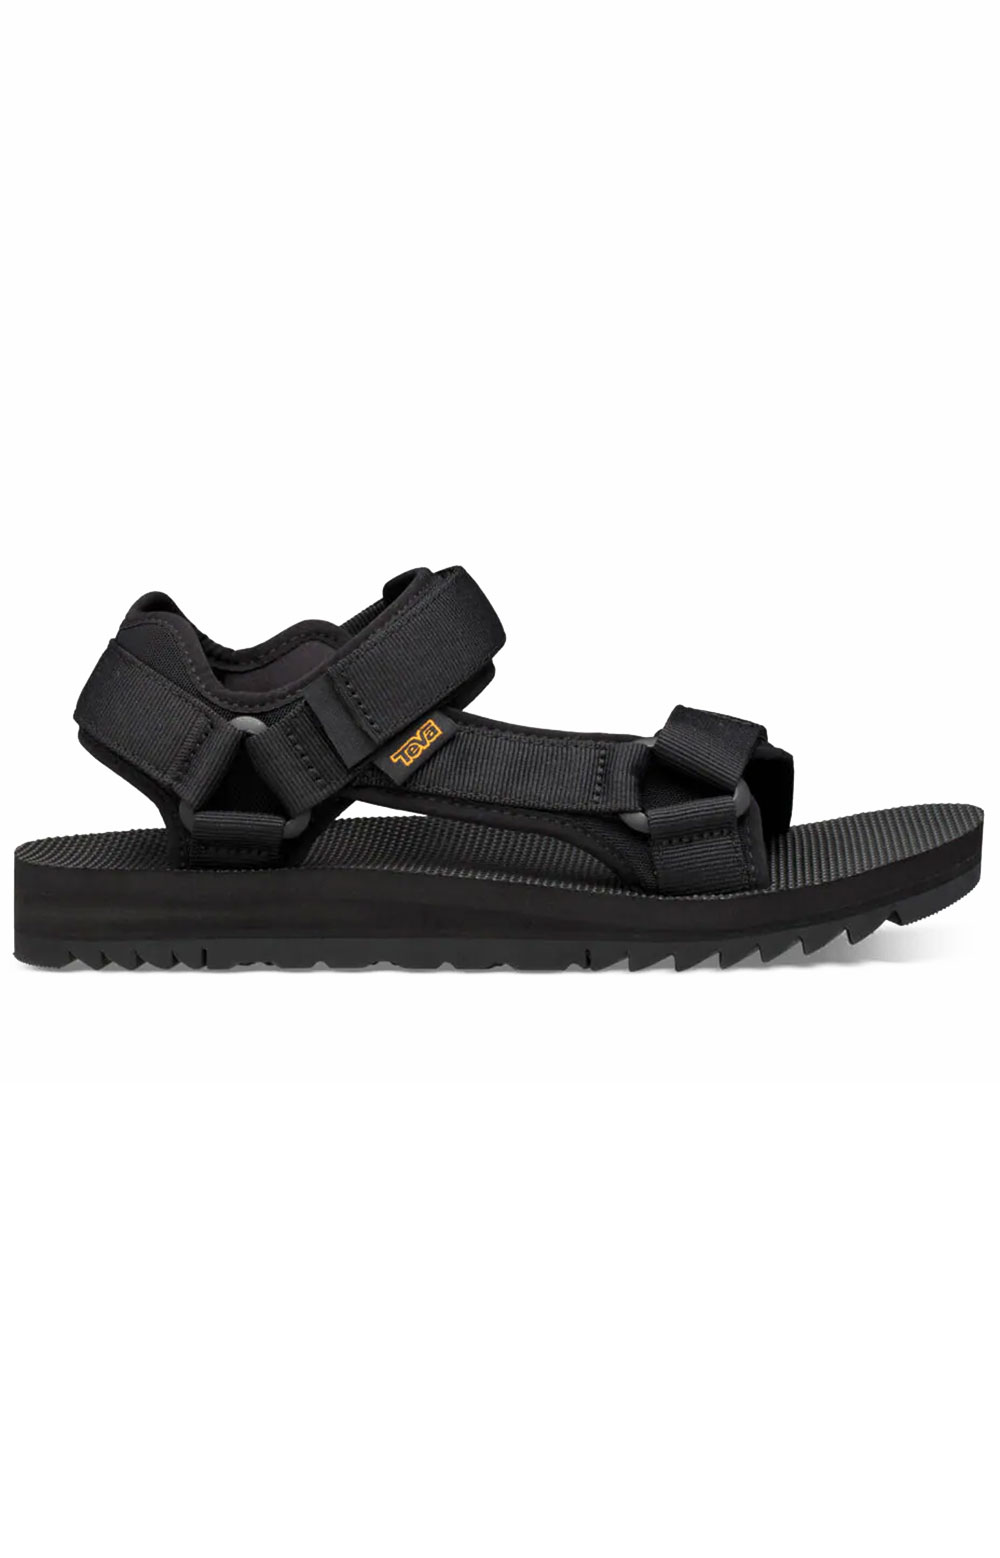 (1106786) Universal Trail Sandals - Pottery Black/Taupe  2